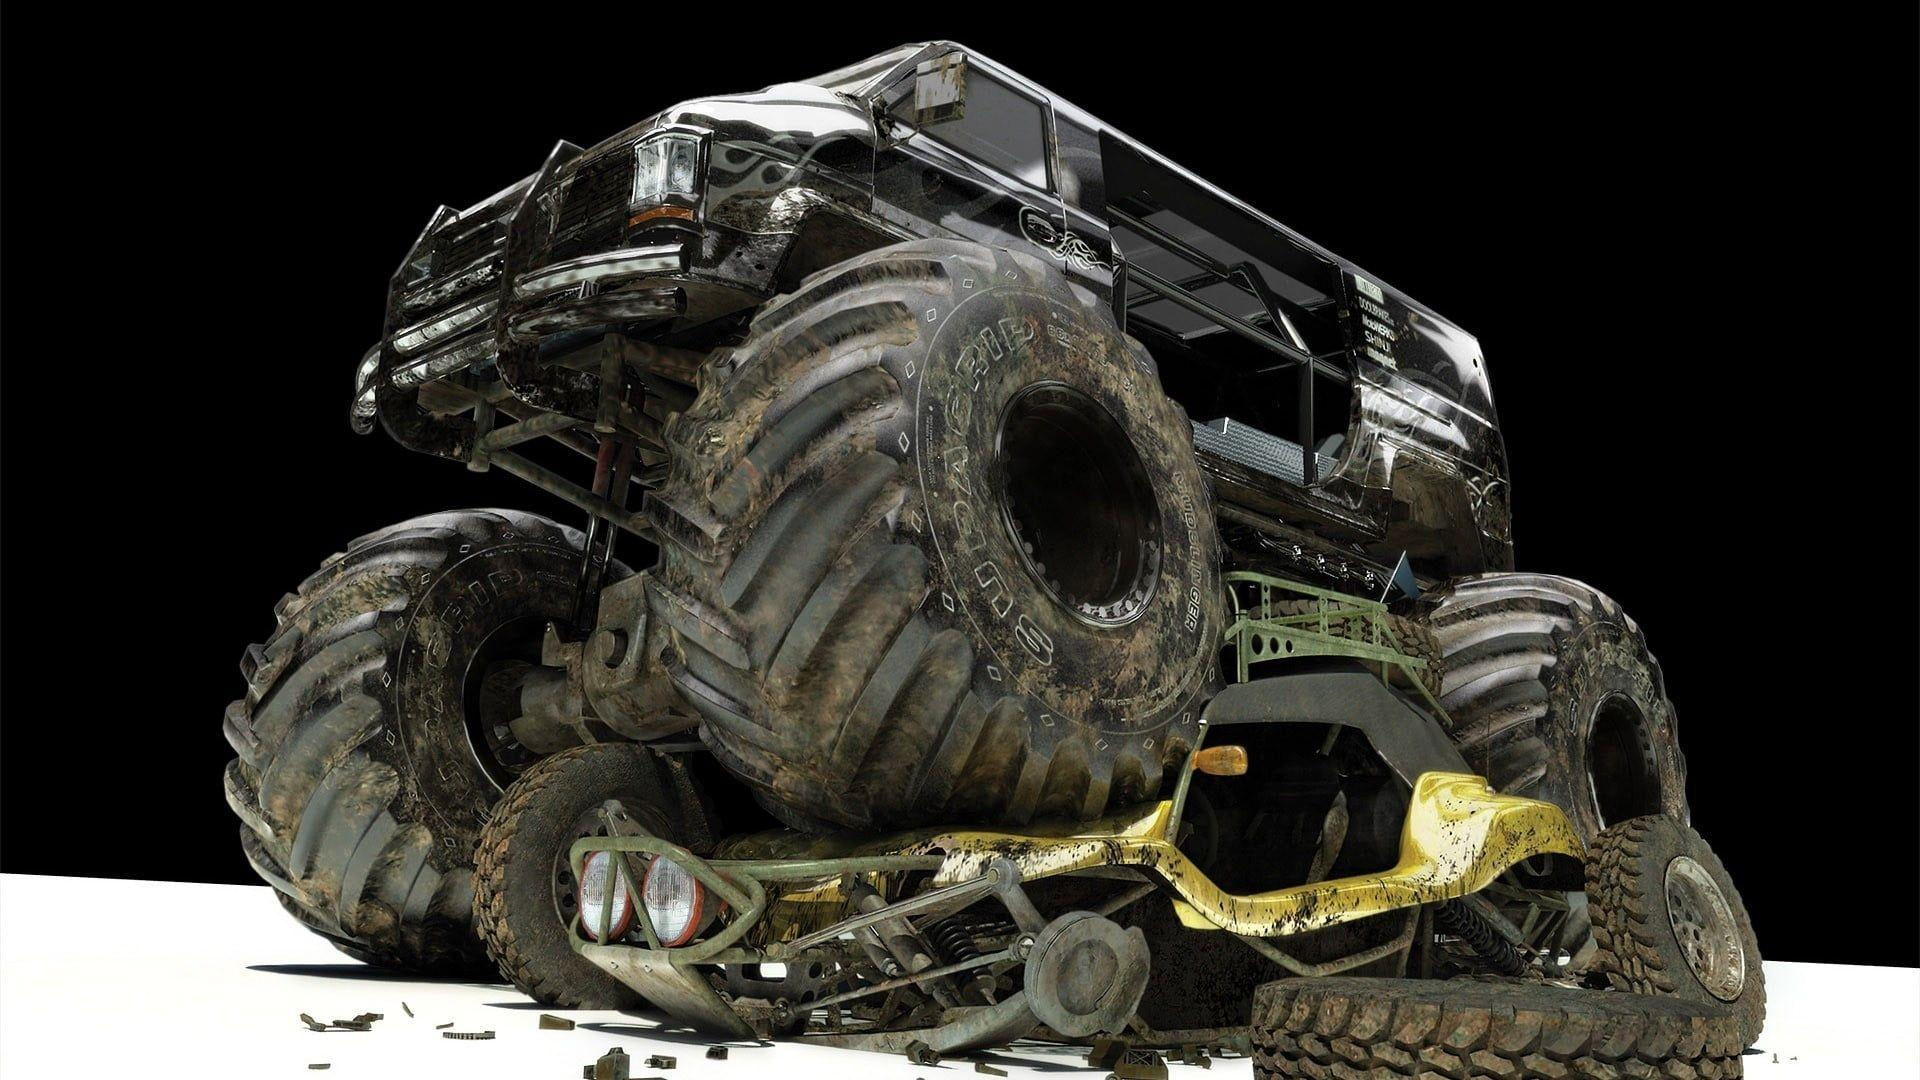 Black monster truck, car, monster trucks HD wallpaper | Wallpaper Flare